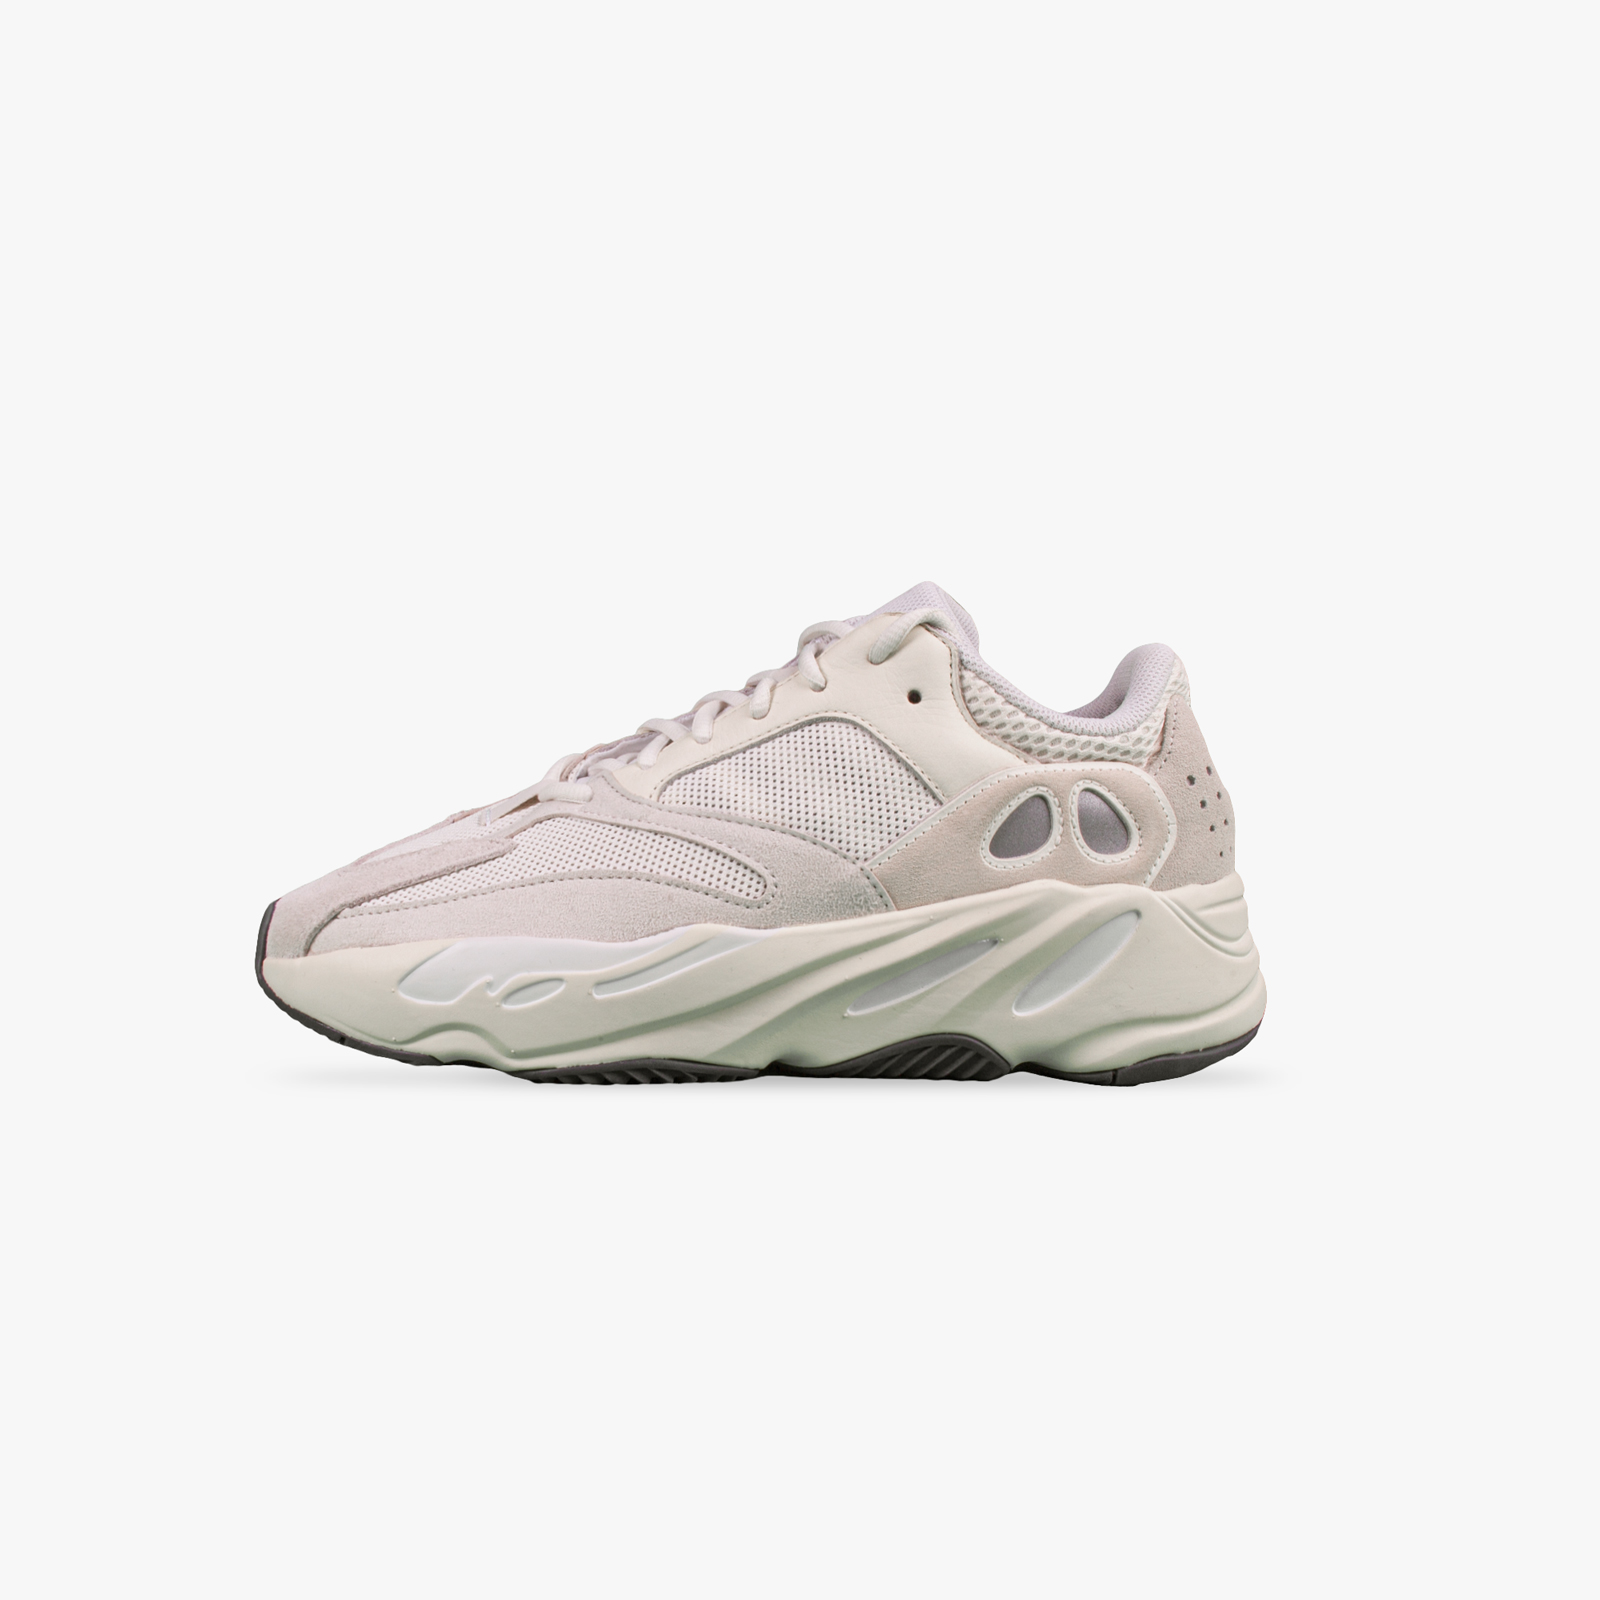 new arrivals 9d2a0 aeae1 Adidas Yeezy Boost 700